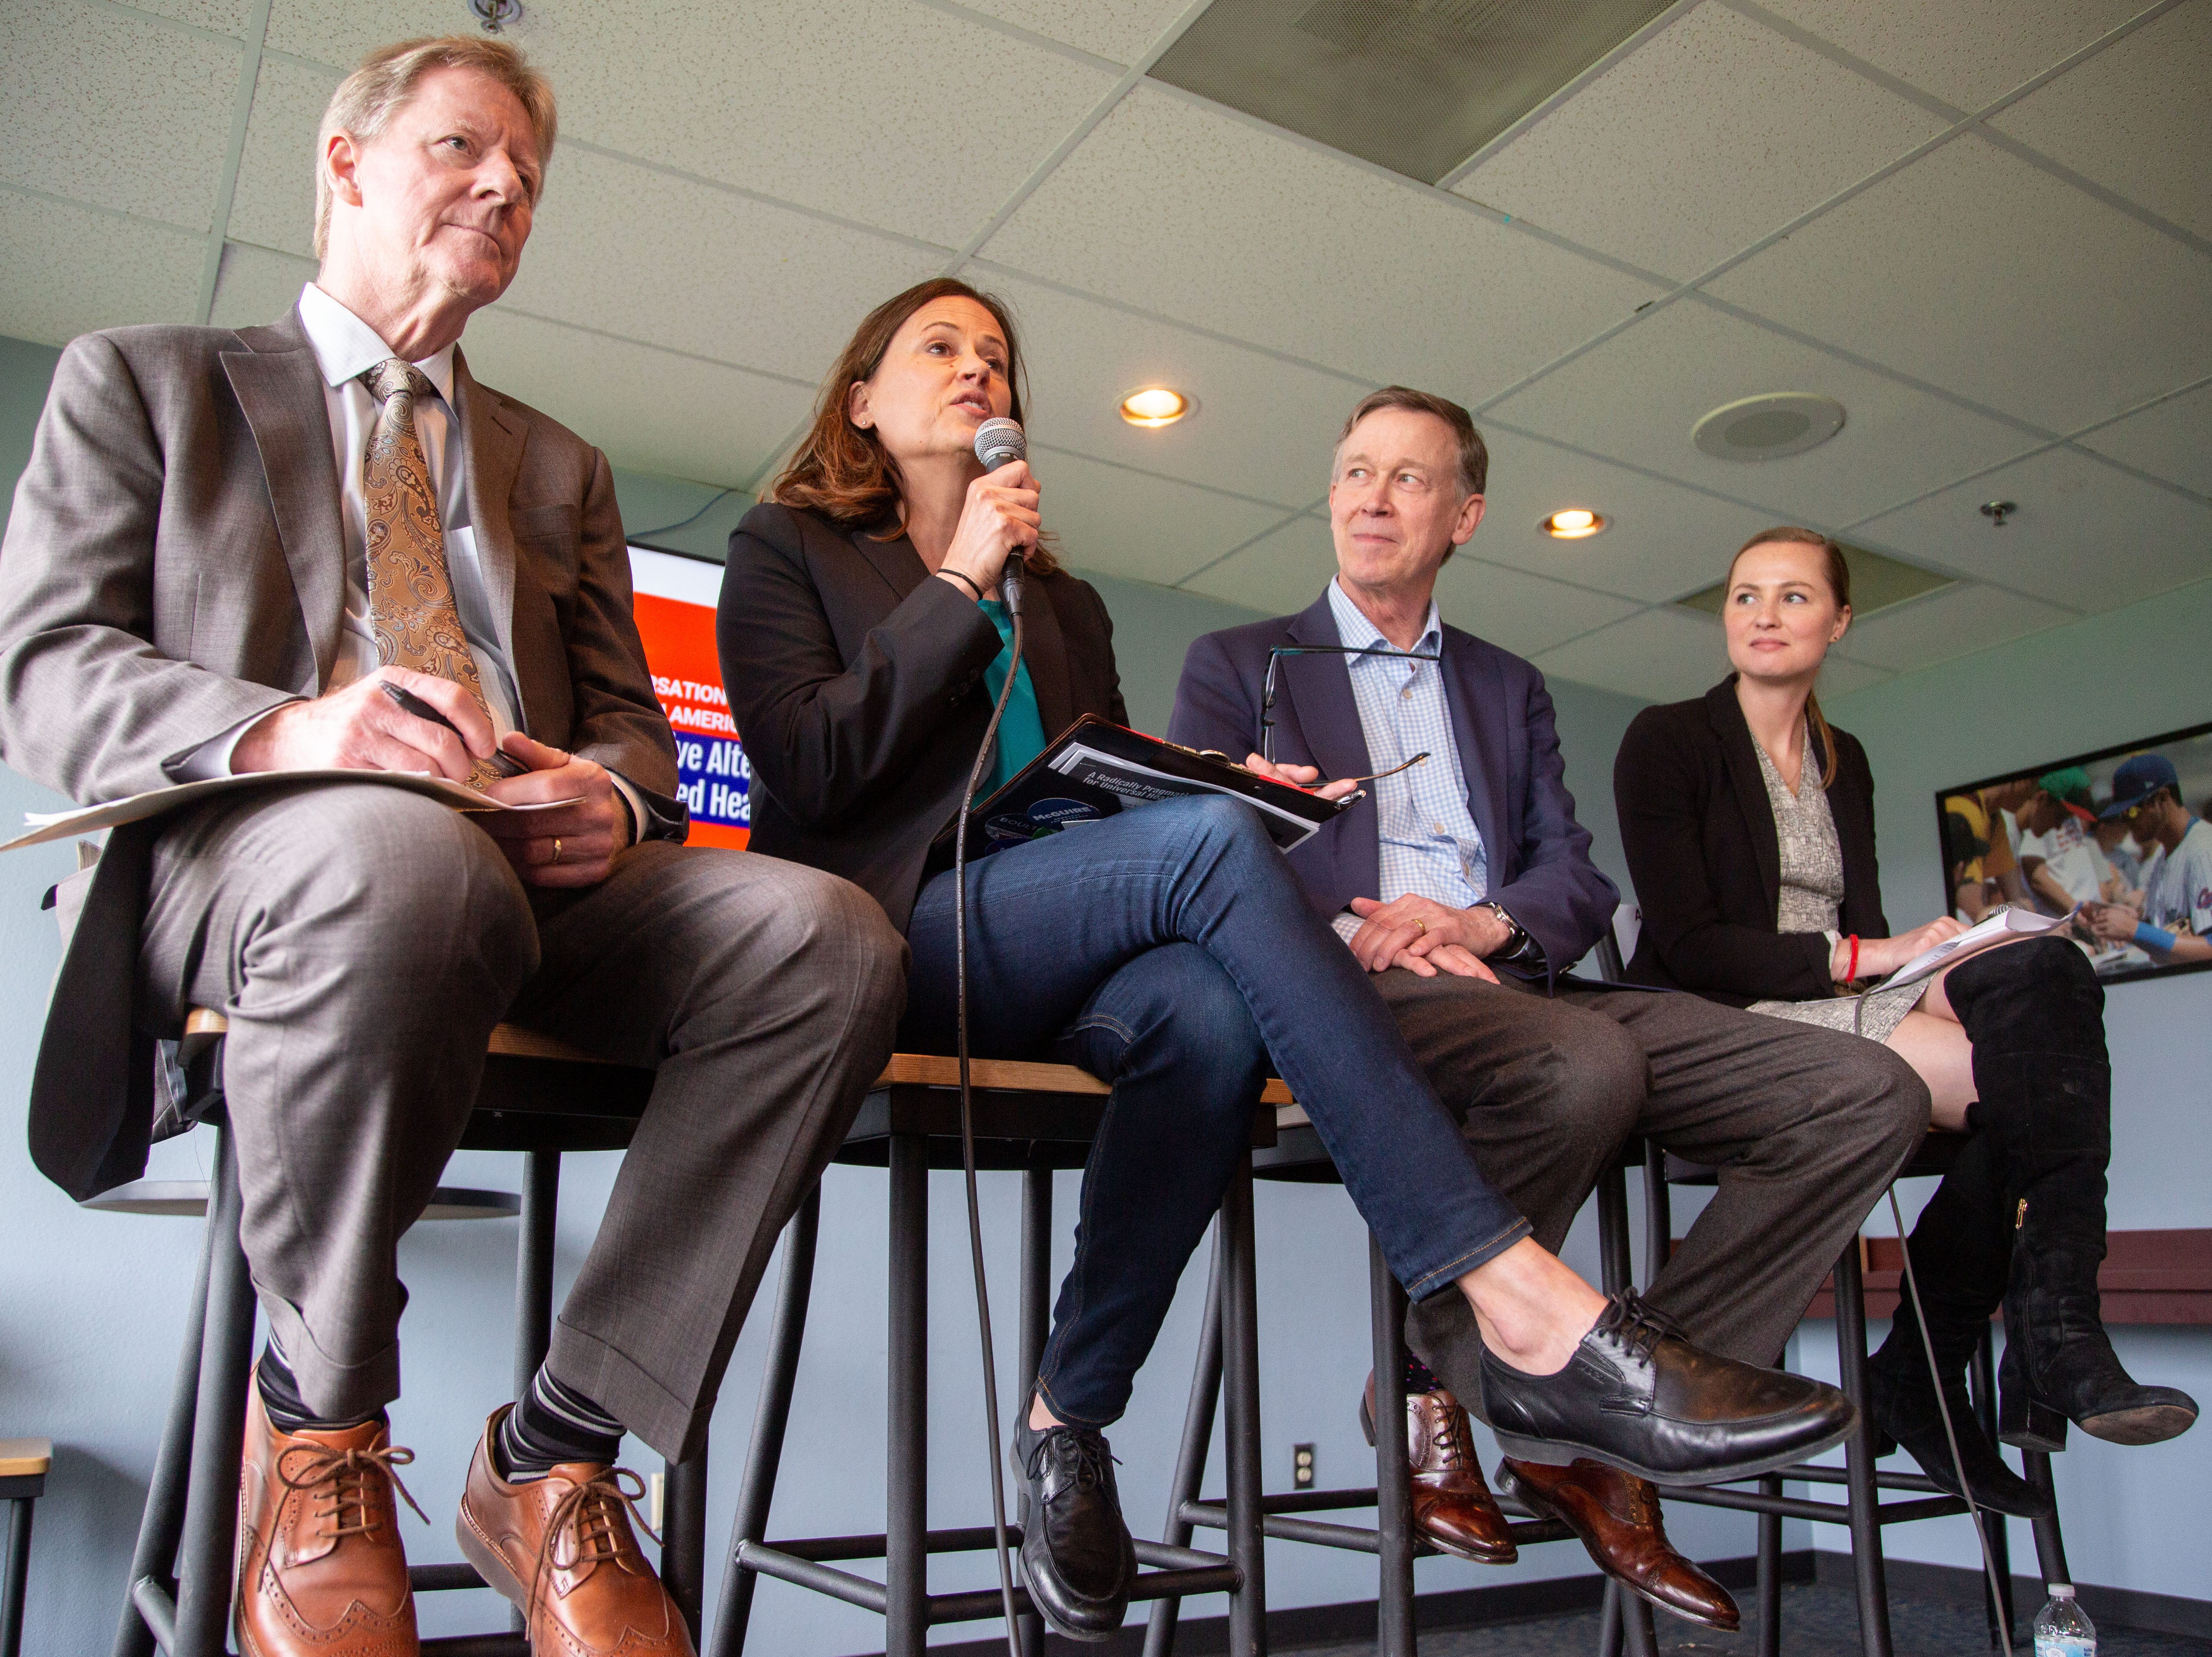 Will Marshall, Theresa Greenfield, Governor John Hickenlooper and Arielle Kane take part in a discussion on alternatives to nationalized health care hosted by the Progressive Policy Institute at the Cub Club Friday, April 12, 2019.